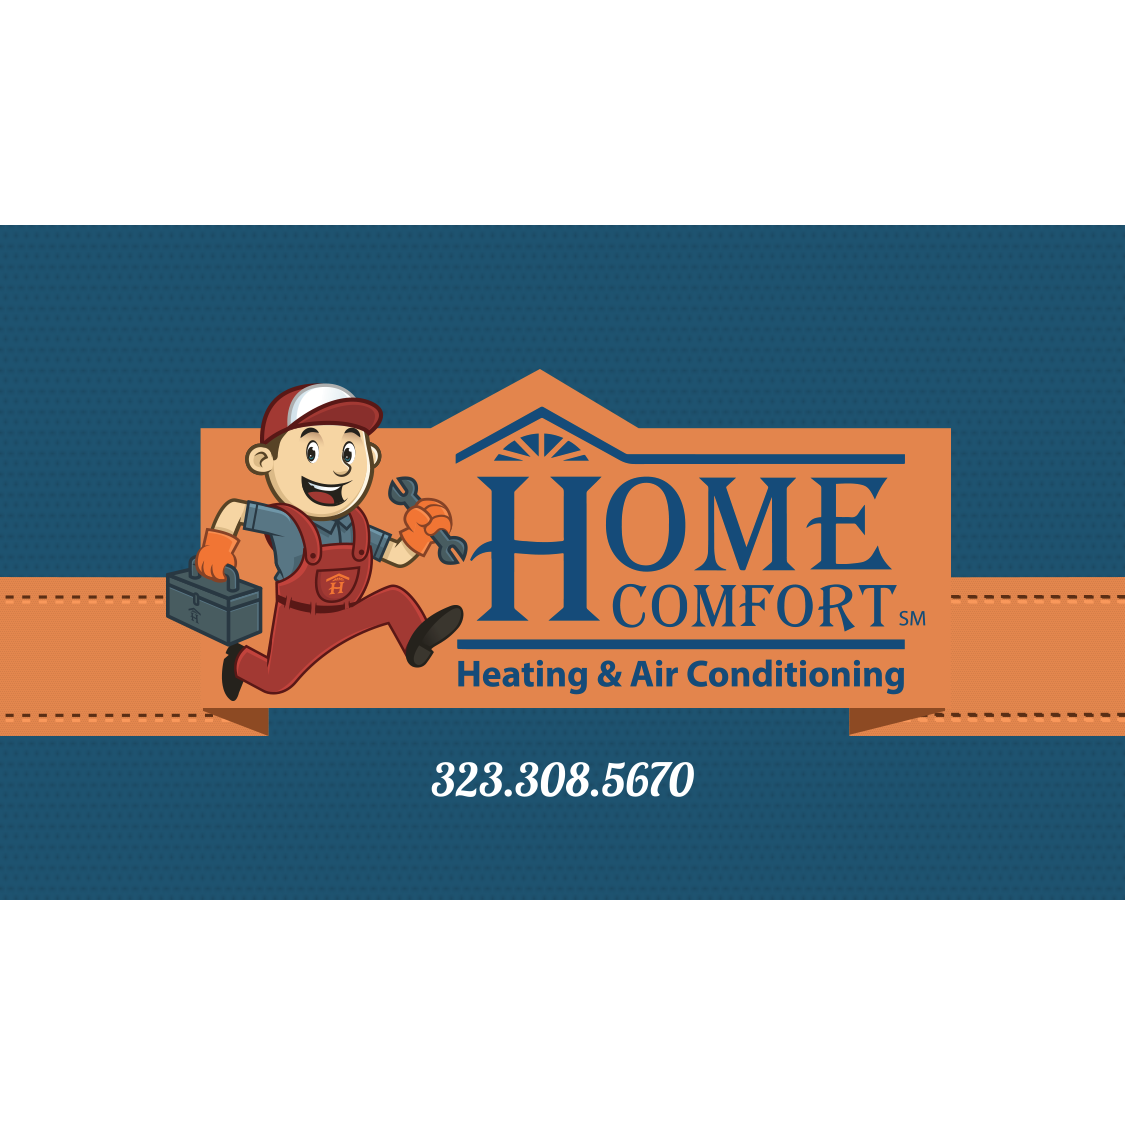 Home Comfort Heating & Air Conditioning, Inc.